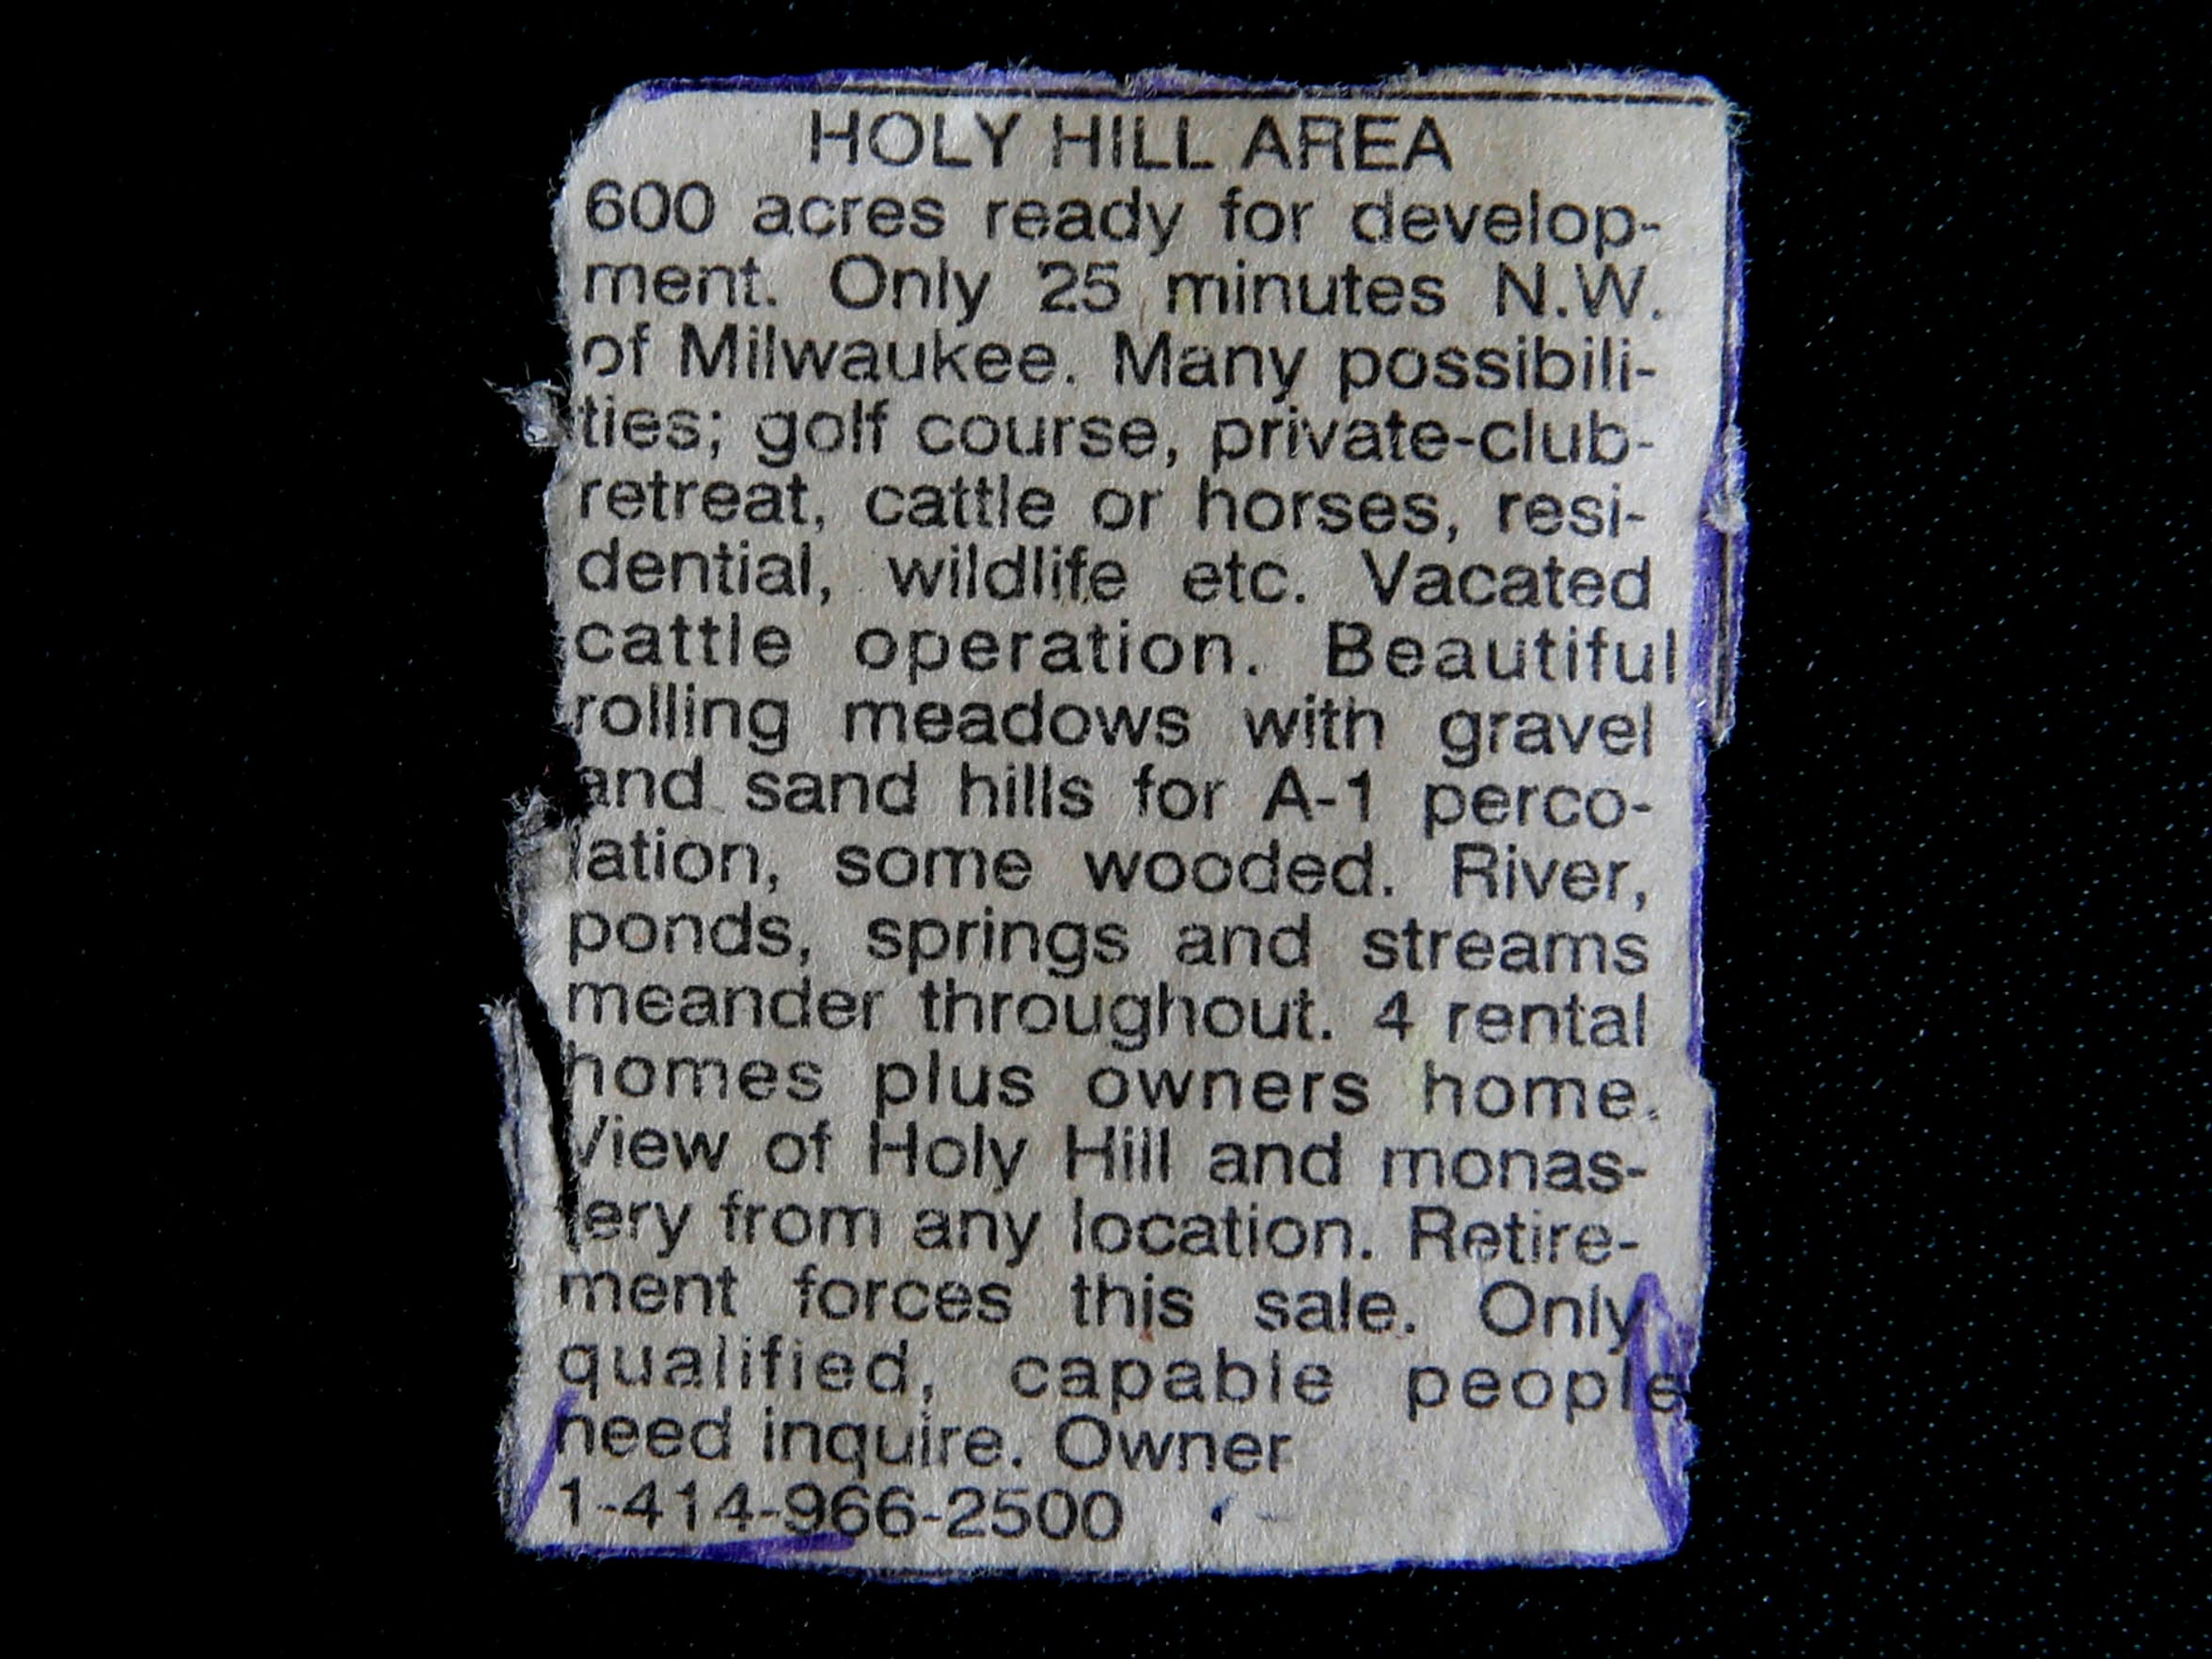 This is the ad that caught the attention of Lillian Williamson.